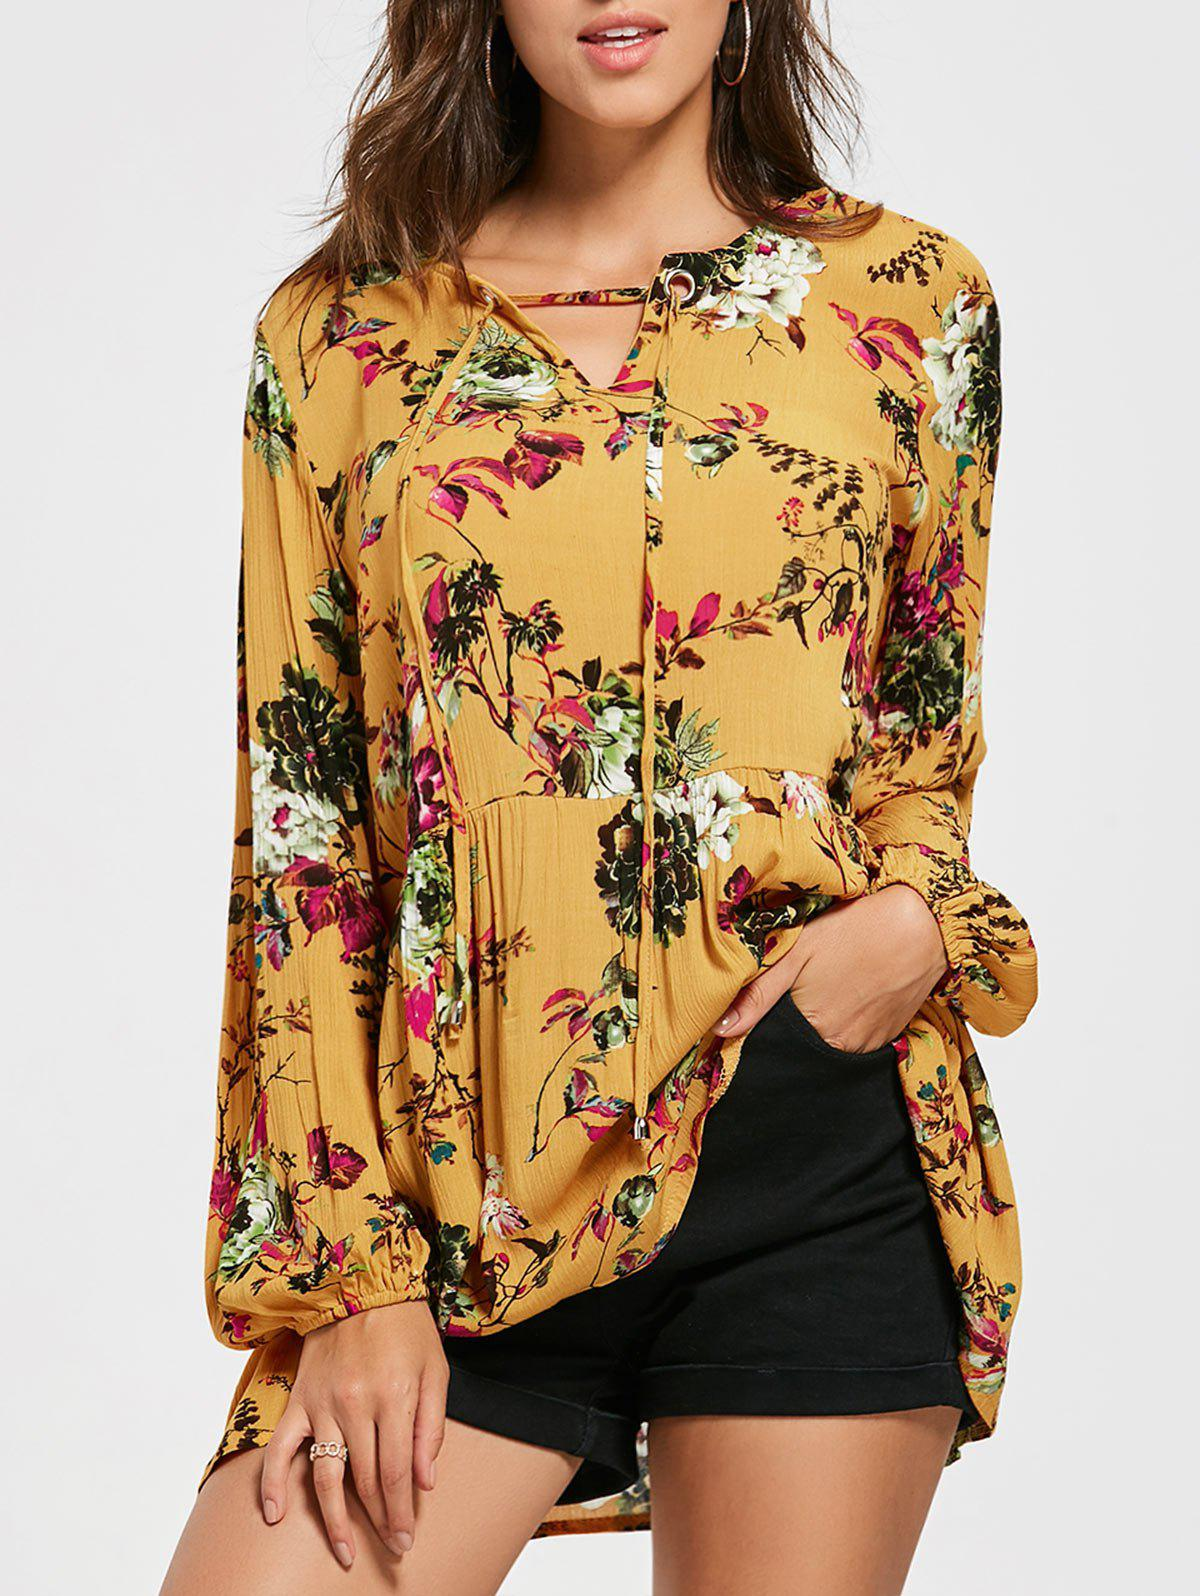 Eyelet Floral Print Tunic BlouseWOMEN<br><br>Size: XL; Color: YELLOW; Style: Casual; Material: Polyester,Spandex; Shirt Length: Regular; Sleeve Length: Full; Collar: V-Neck; Pattern Type: Floral; Season: Fall,Spring; Weight: 0.2500kg; Package Contents: 1 x Blouse;